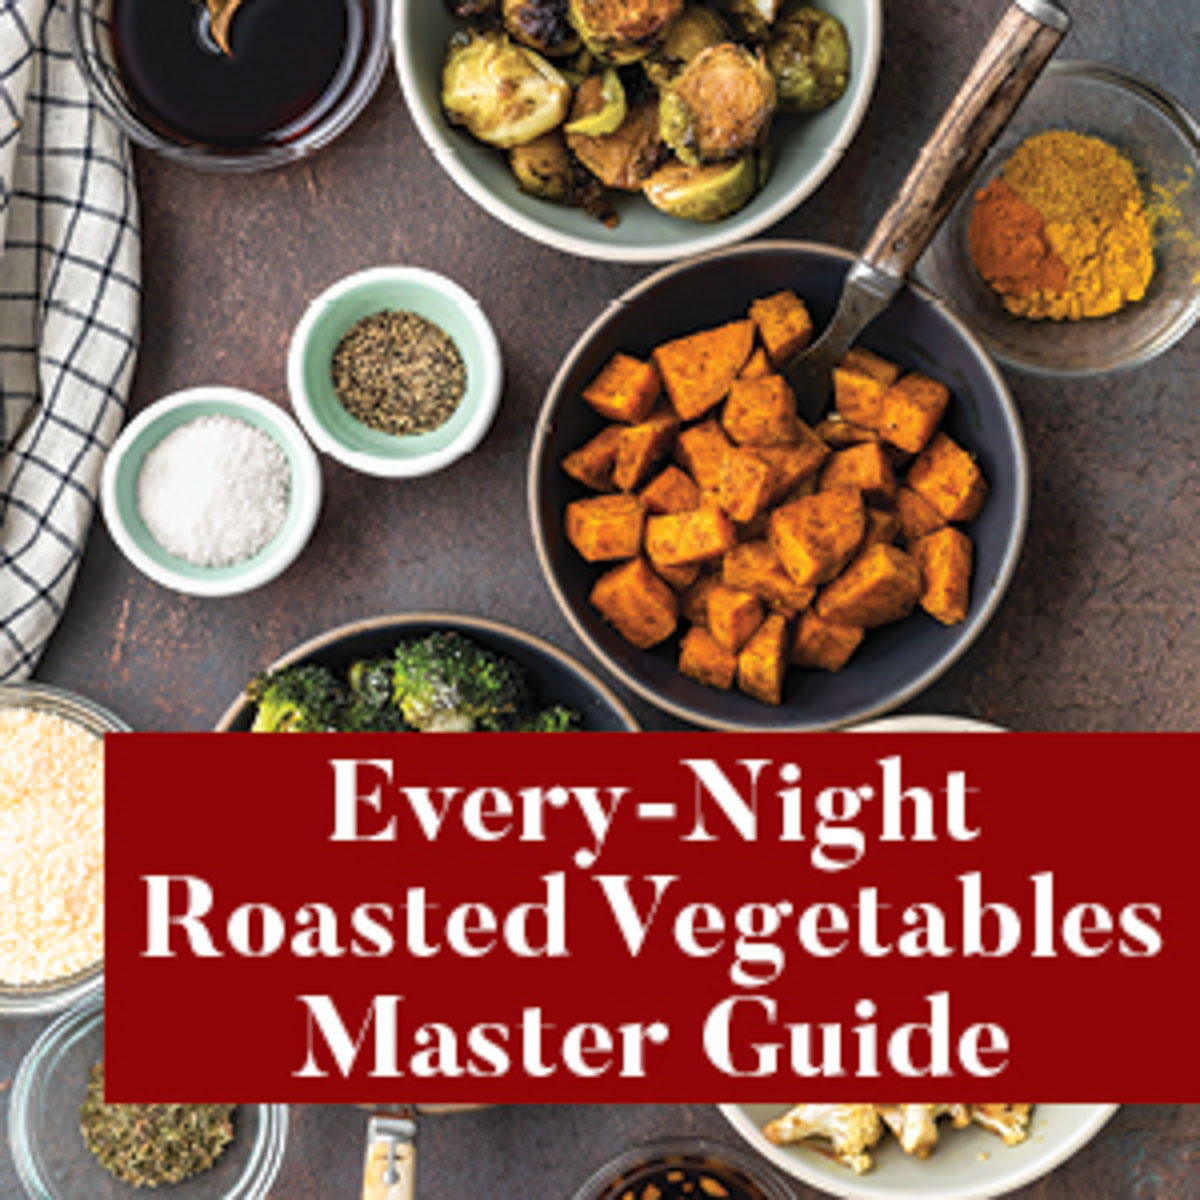 Every Night Roasted Vegetables Master Guide from The Well Plated Cookbook